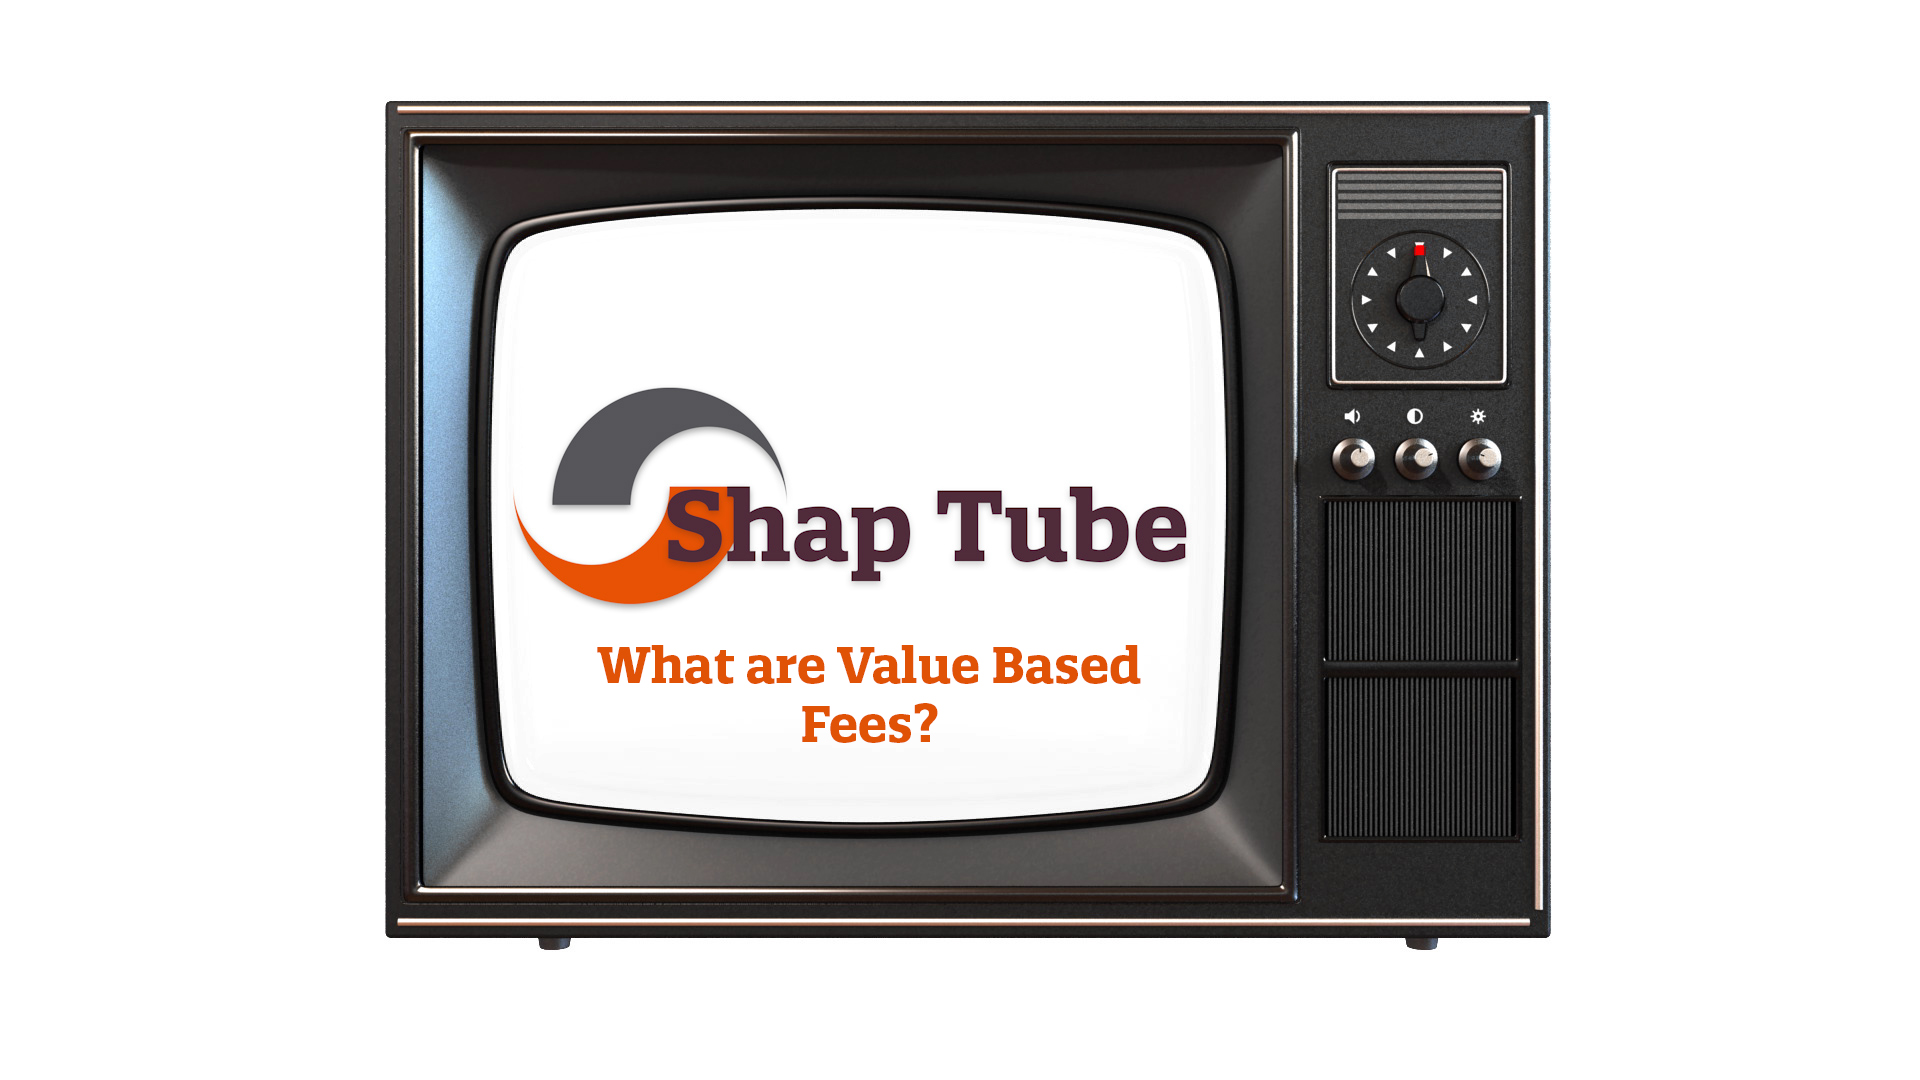 What are Value Based Fees?